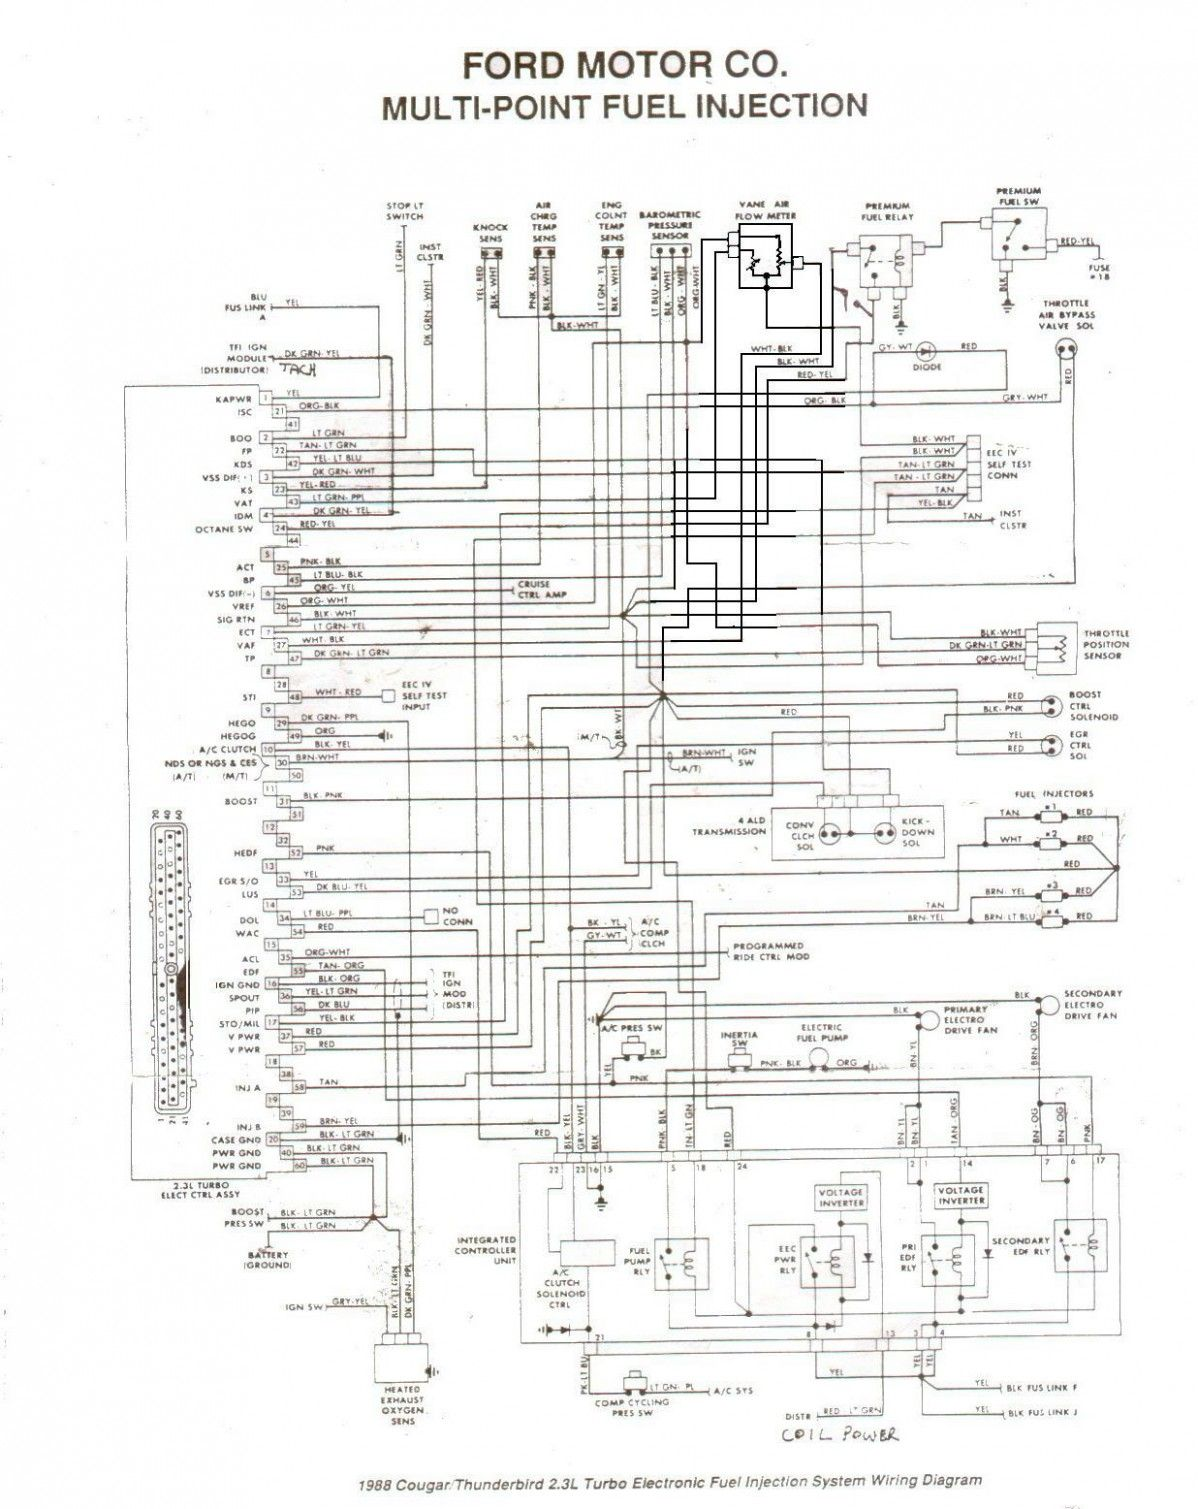 Engine Wiring Diagram For 5 Ford Ranger Turbo In 2020 Ford Ranger Ford Ranger Raptor Ford